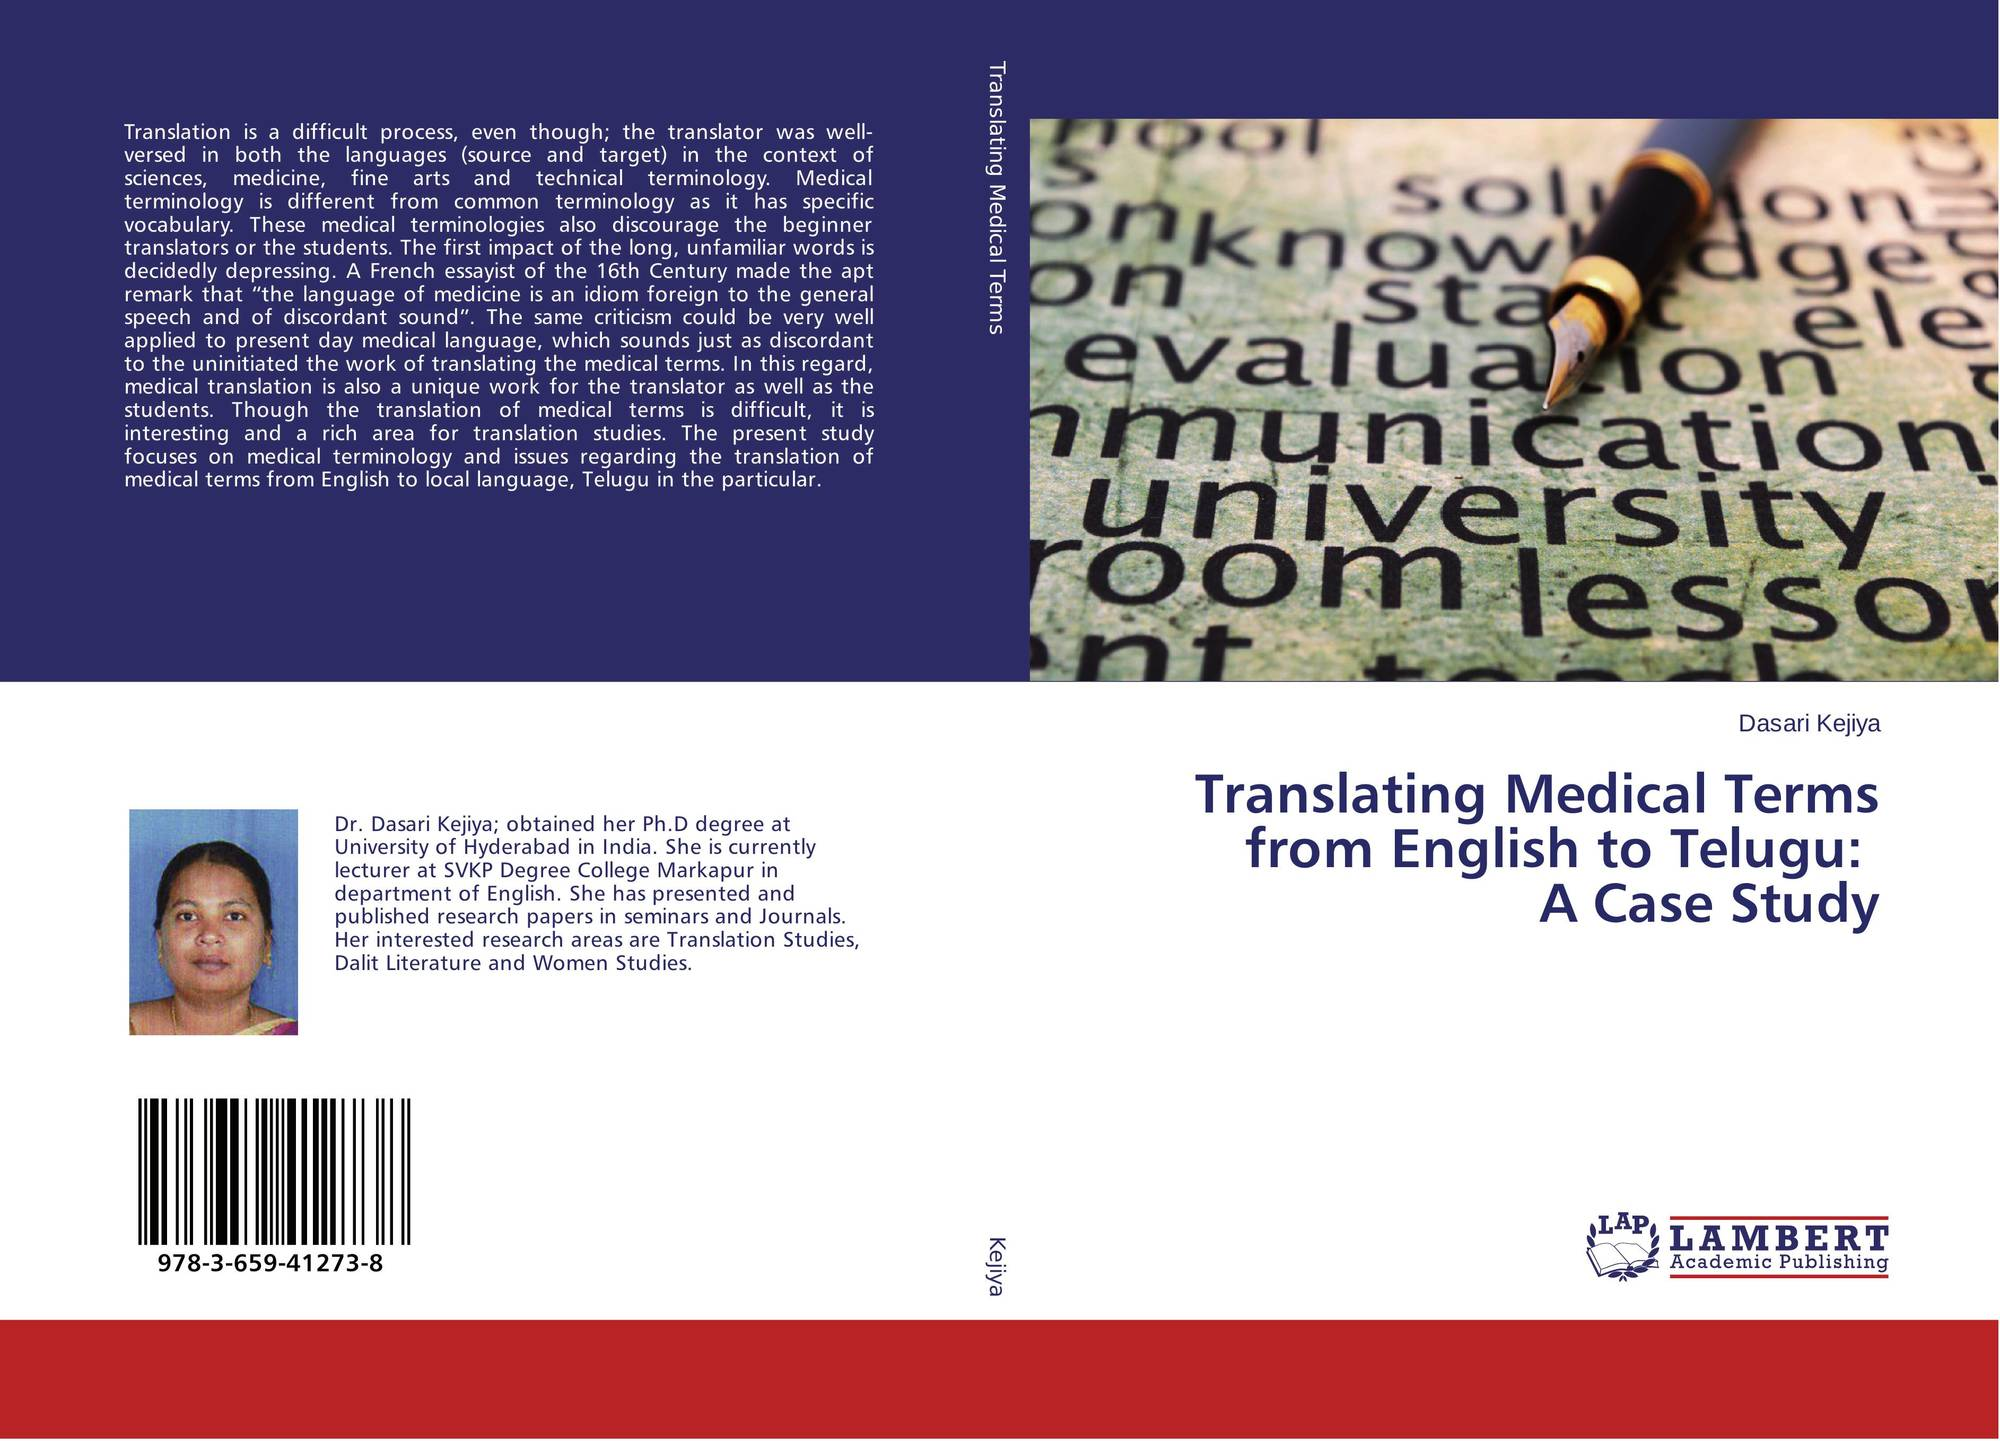 Translating Medical Terms from English to Telugu: A Case